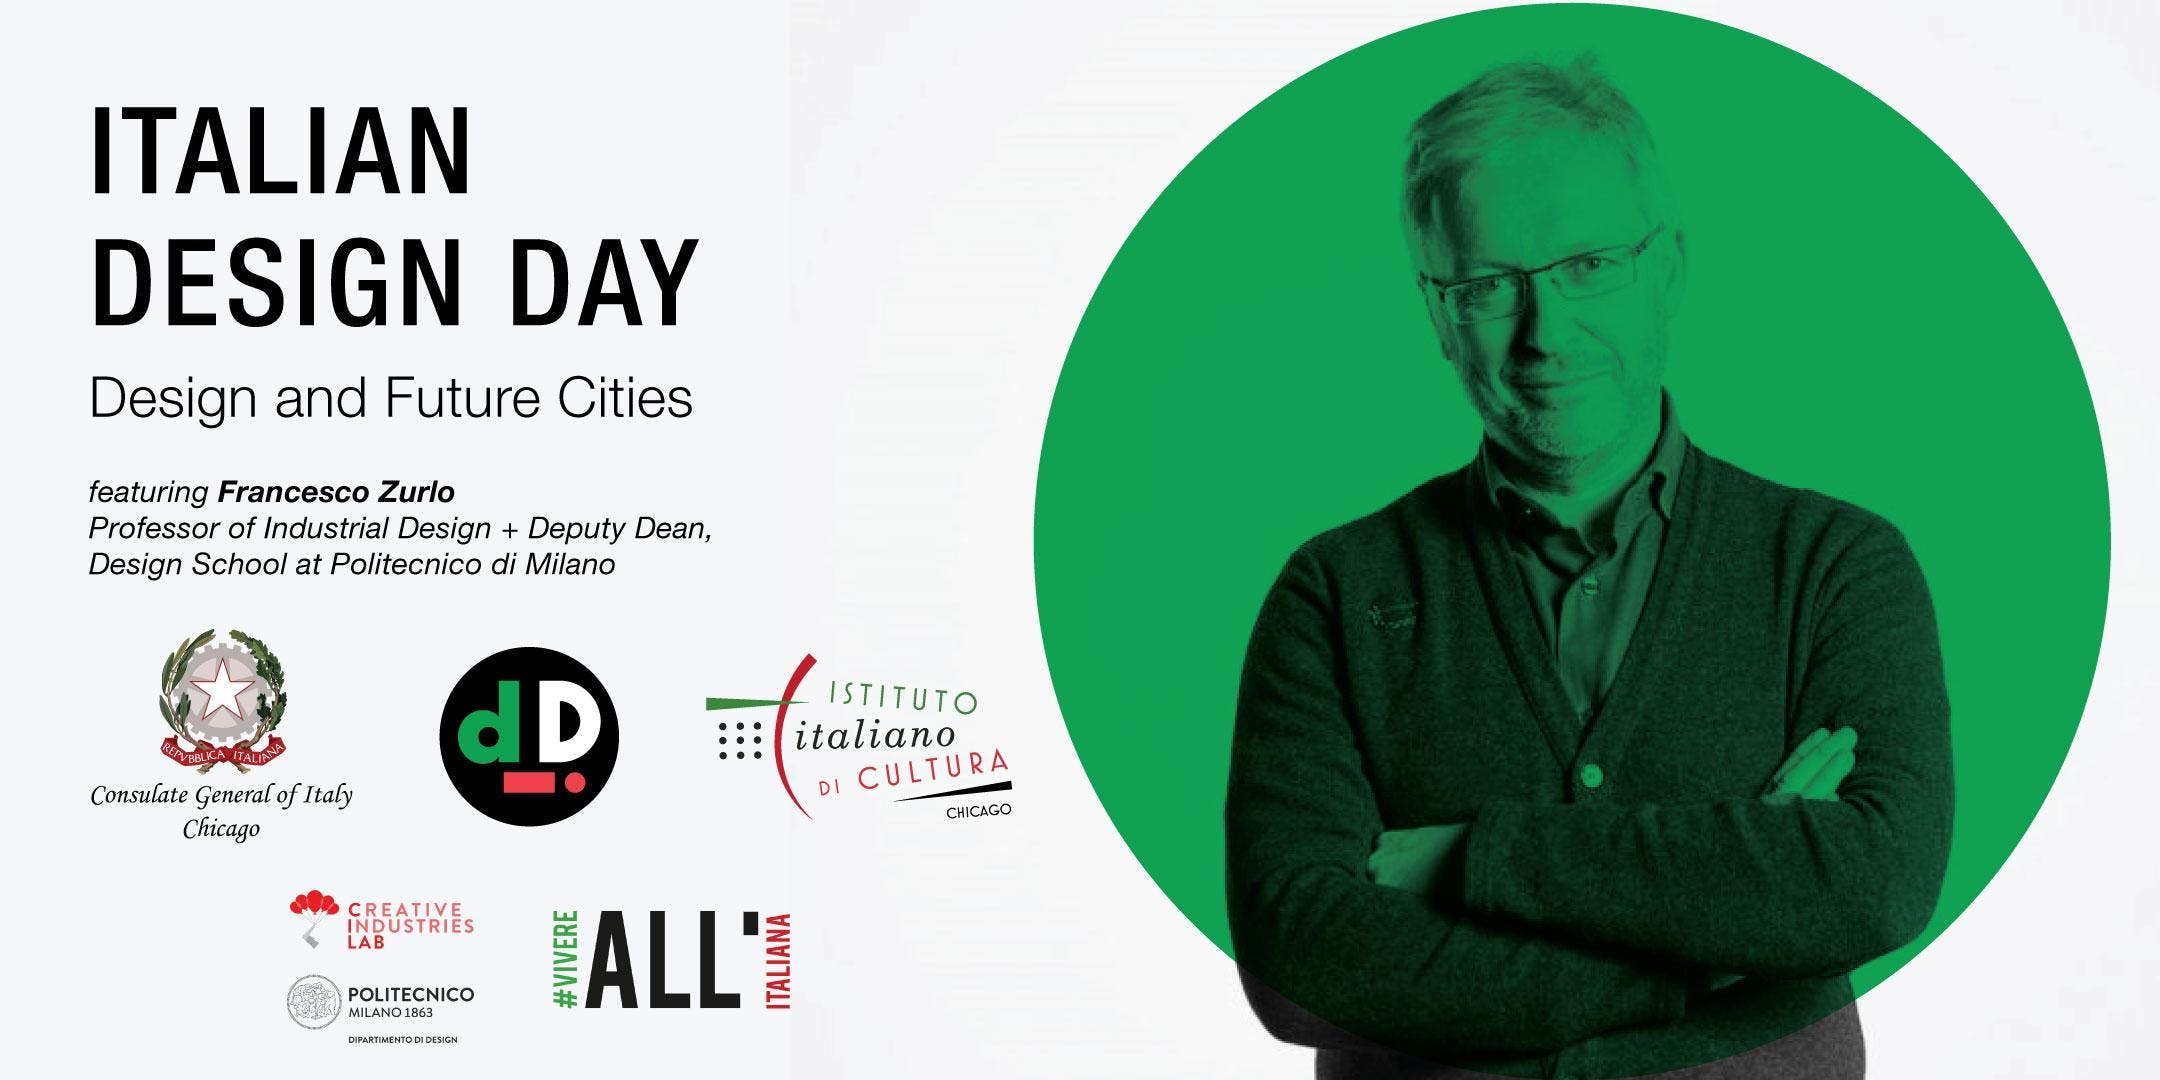 Italian Design Day: Design and Future Cities